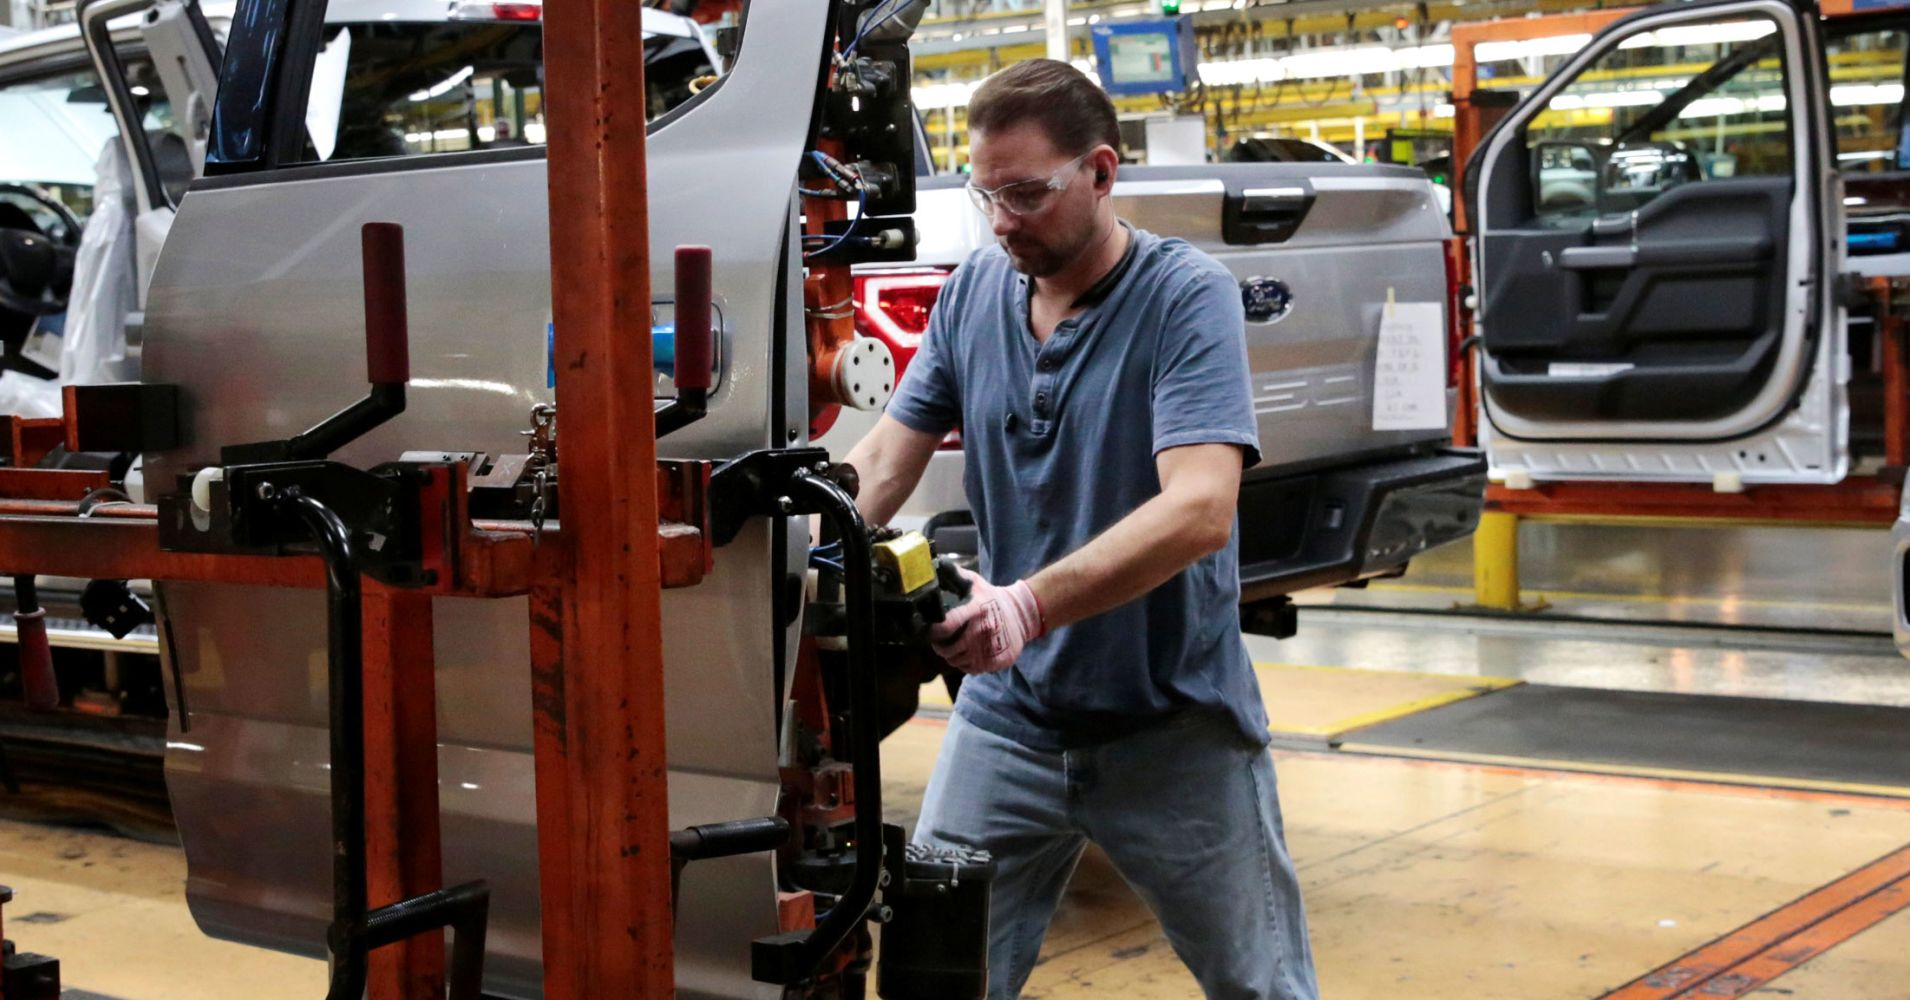 Companies added way more jobs than expected in December: ADP/Moody's